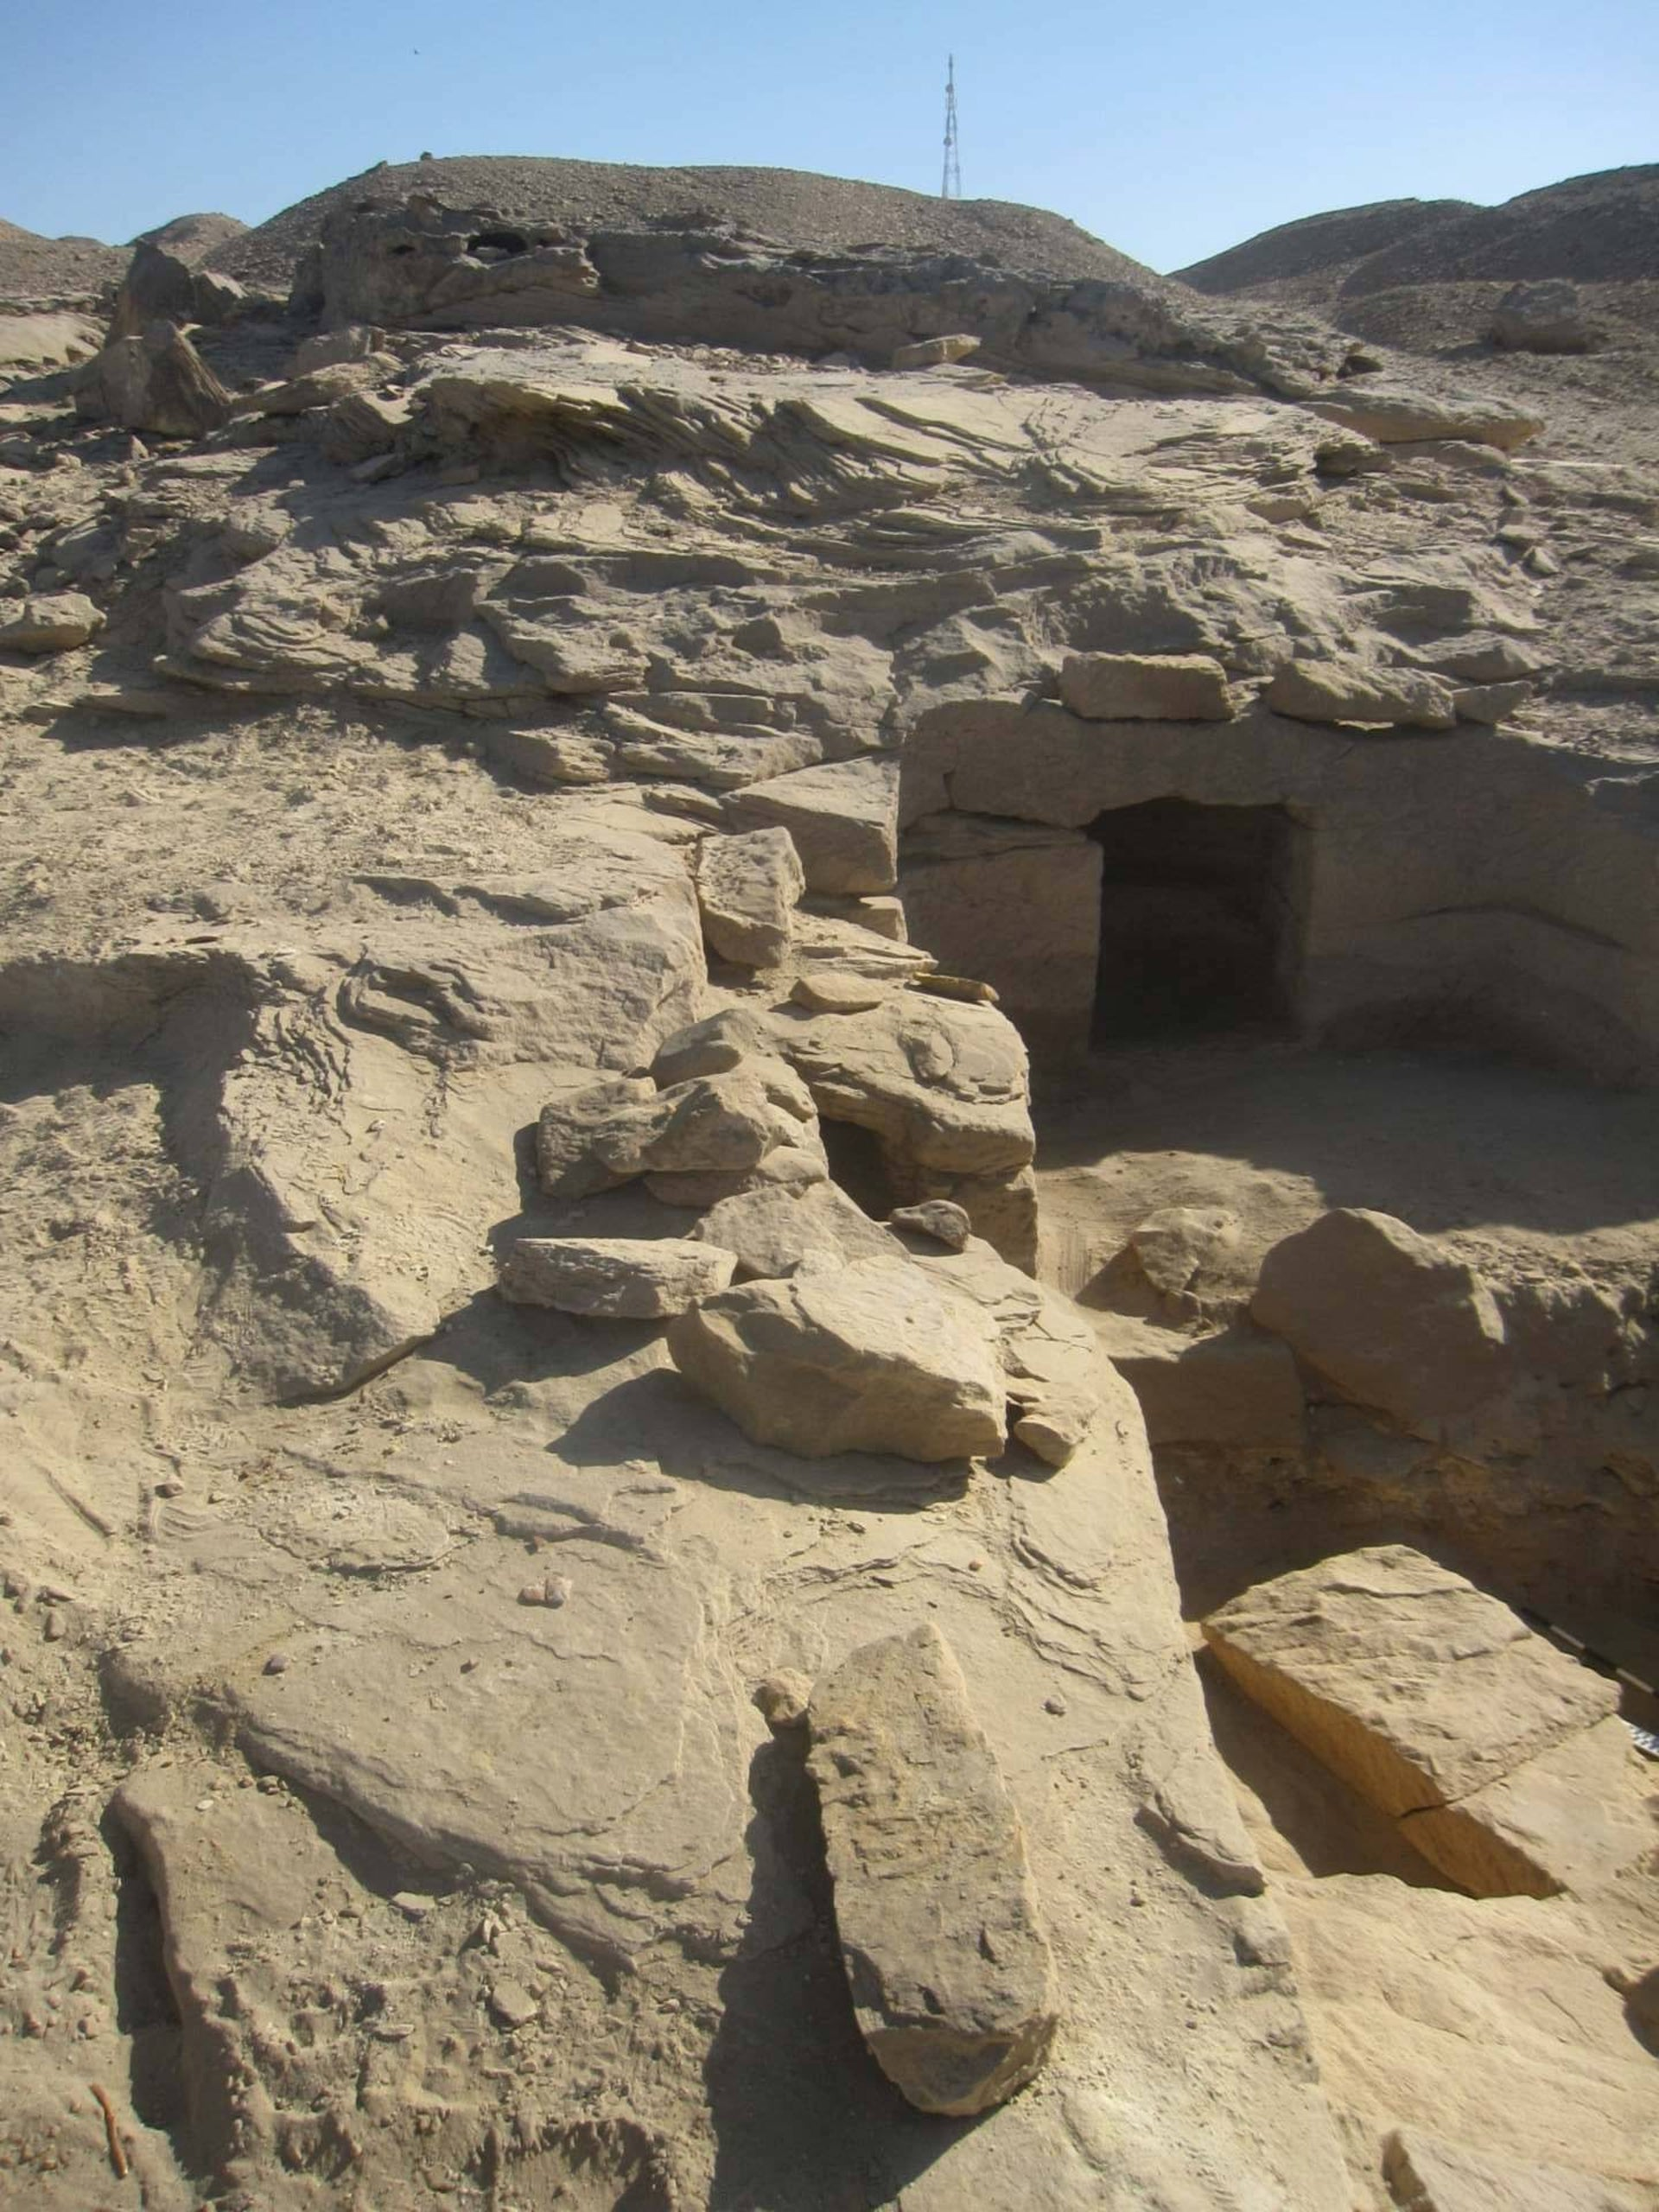 Exterior of a rock-cut tomb, Gebel el-Silsila. Each contained 10-15 individuals